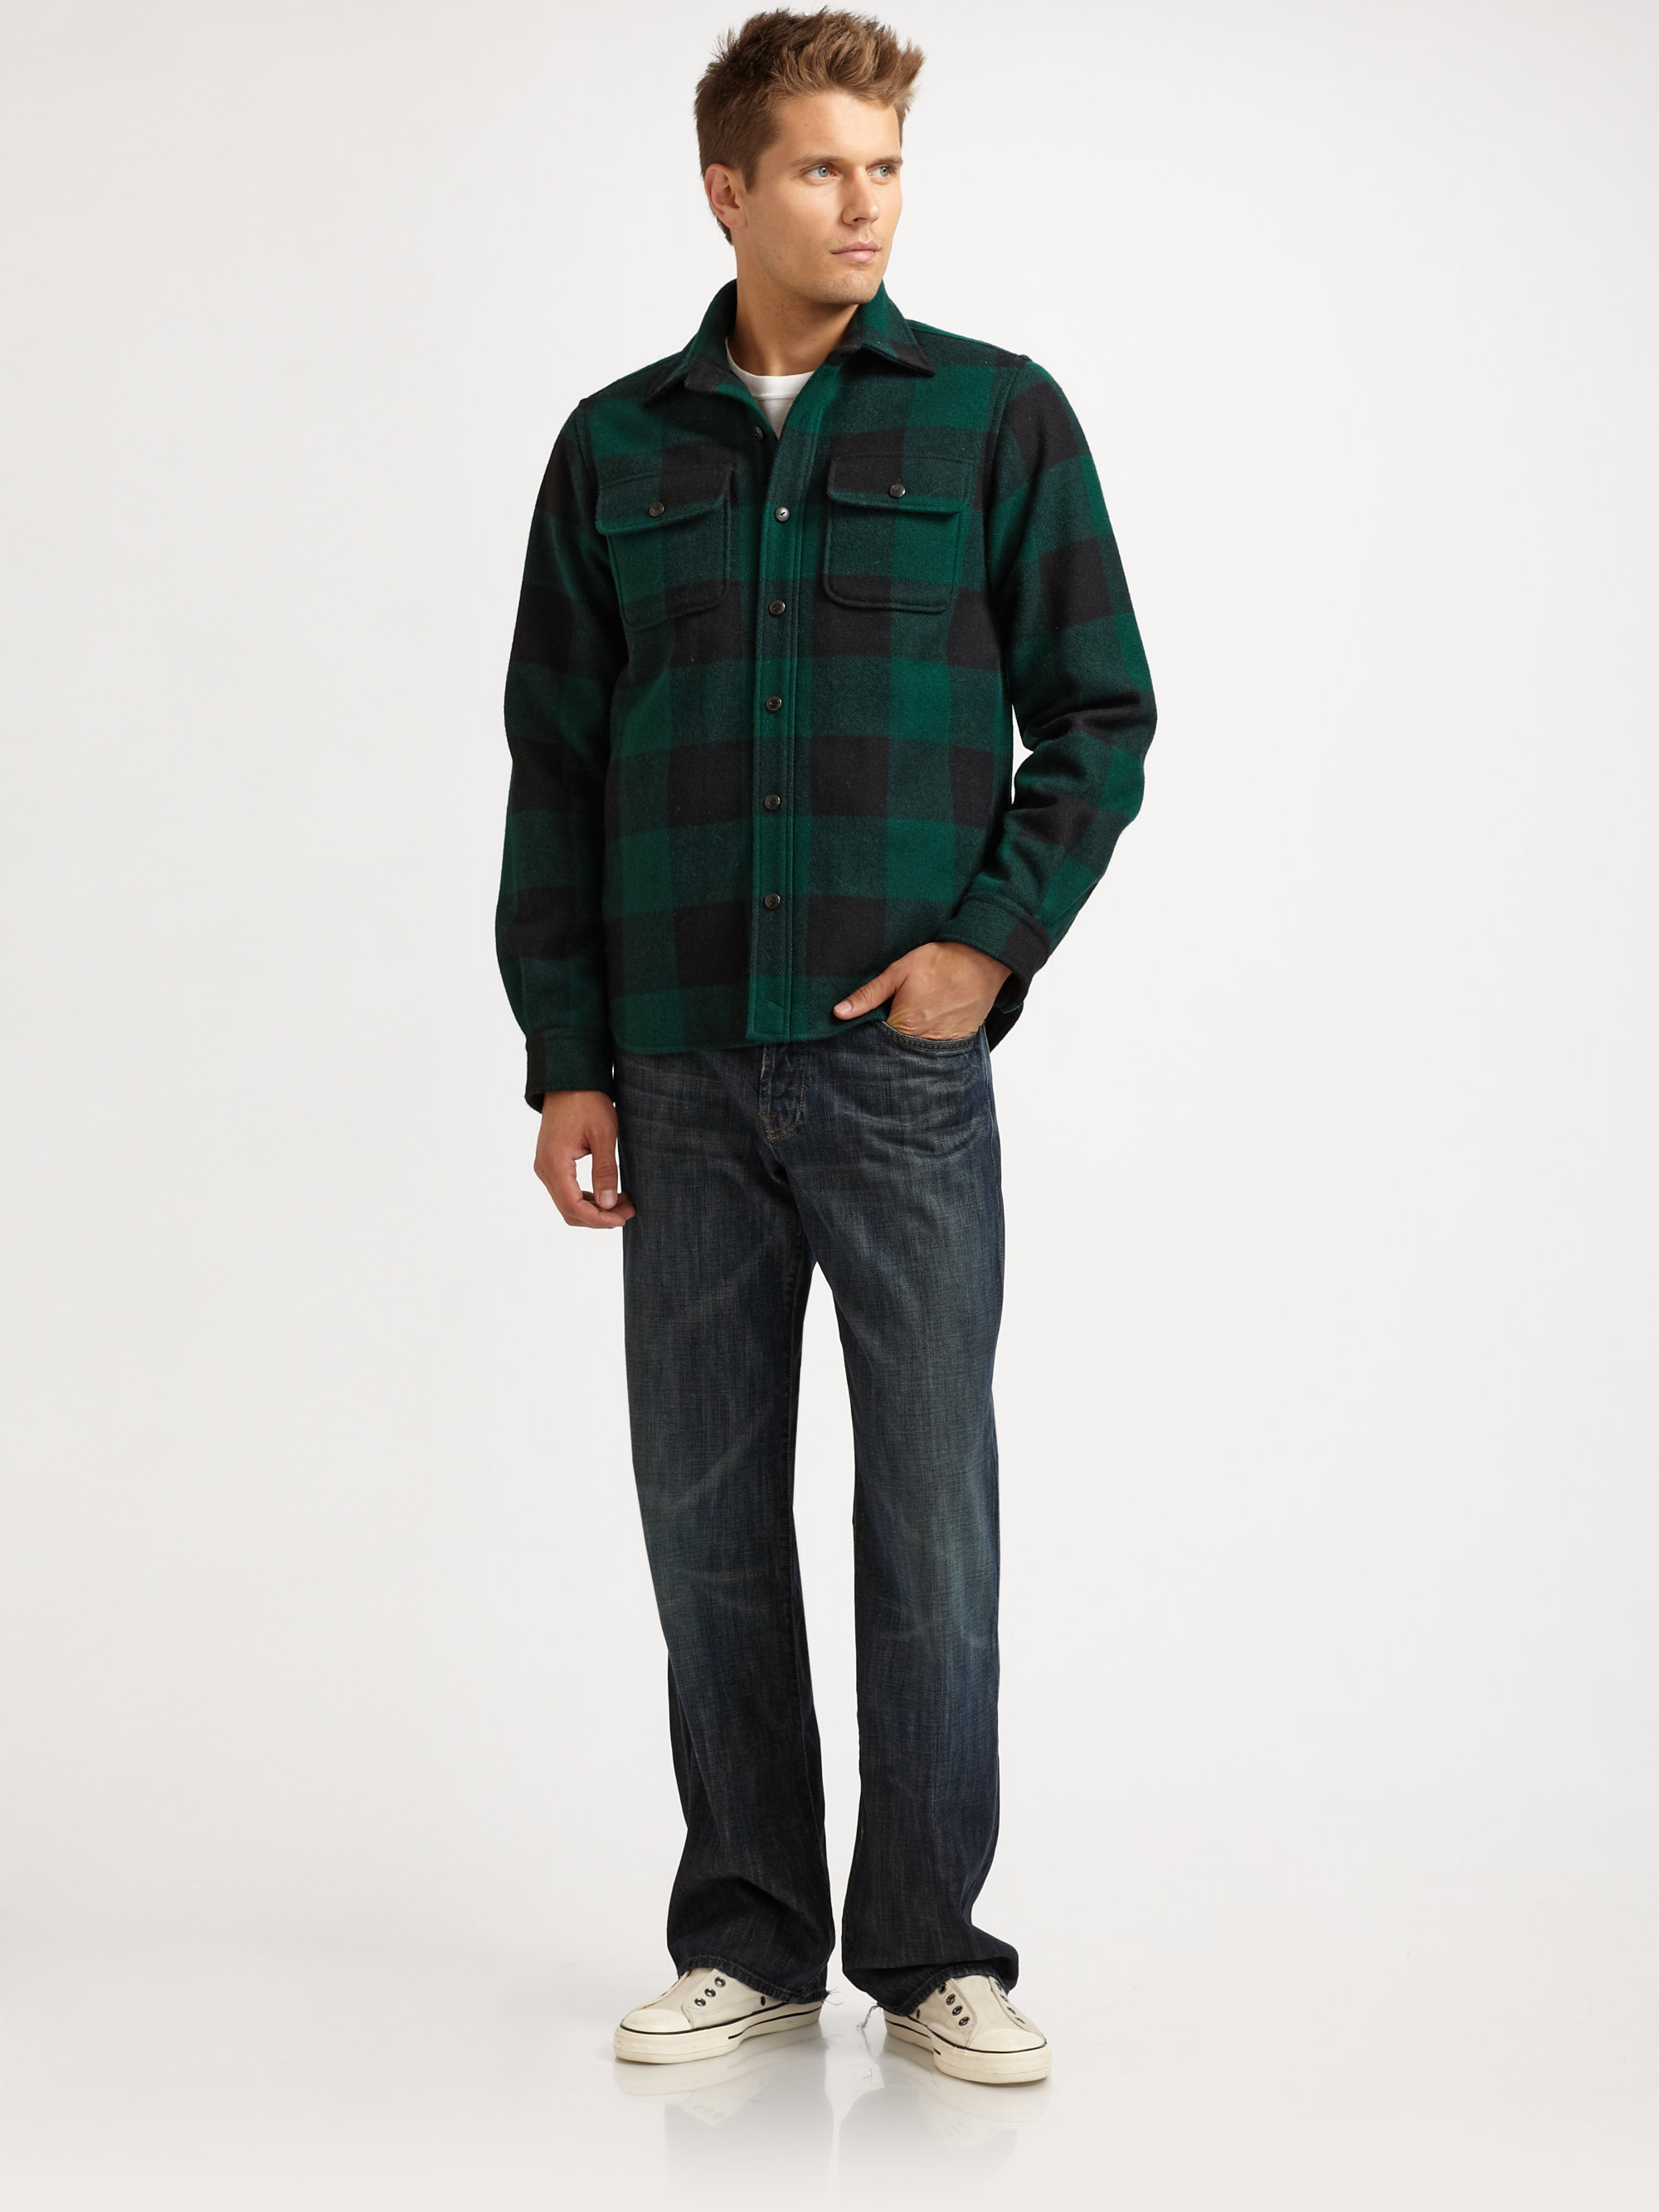 Elizabeth And James Wool Check Shirt Jacket In Green For